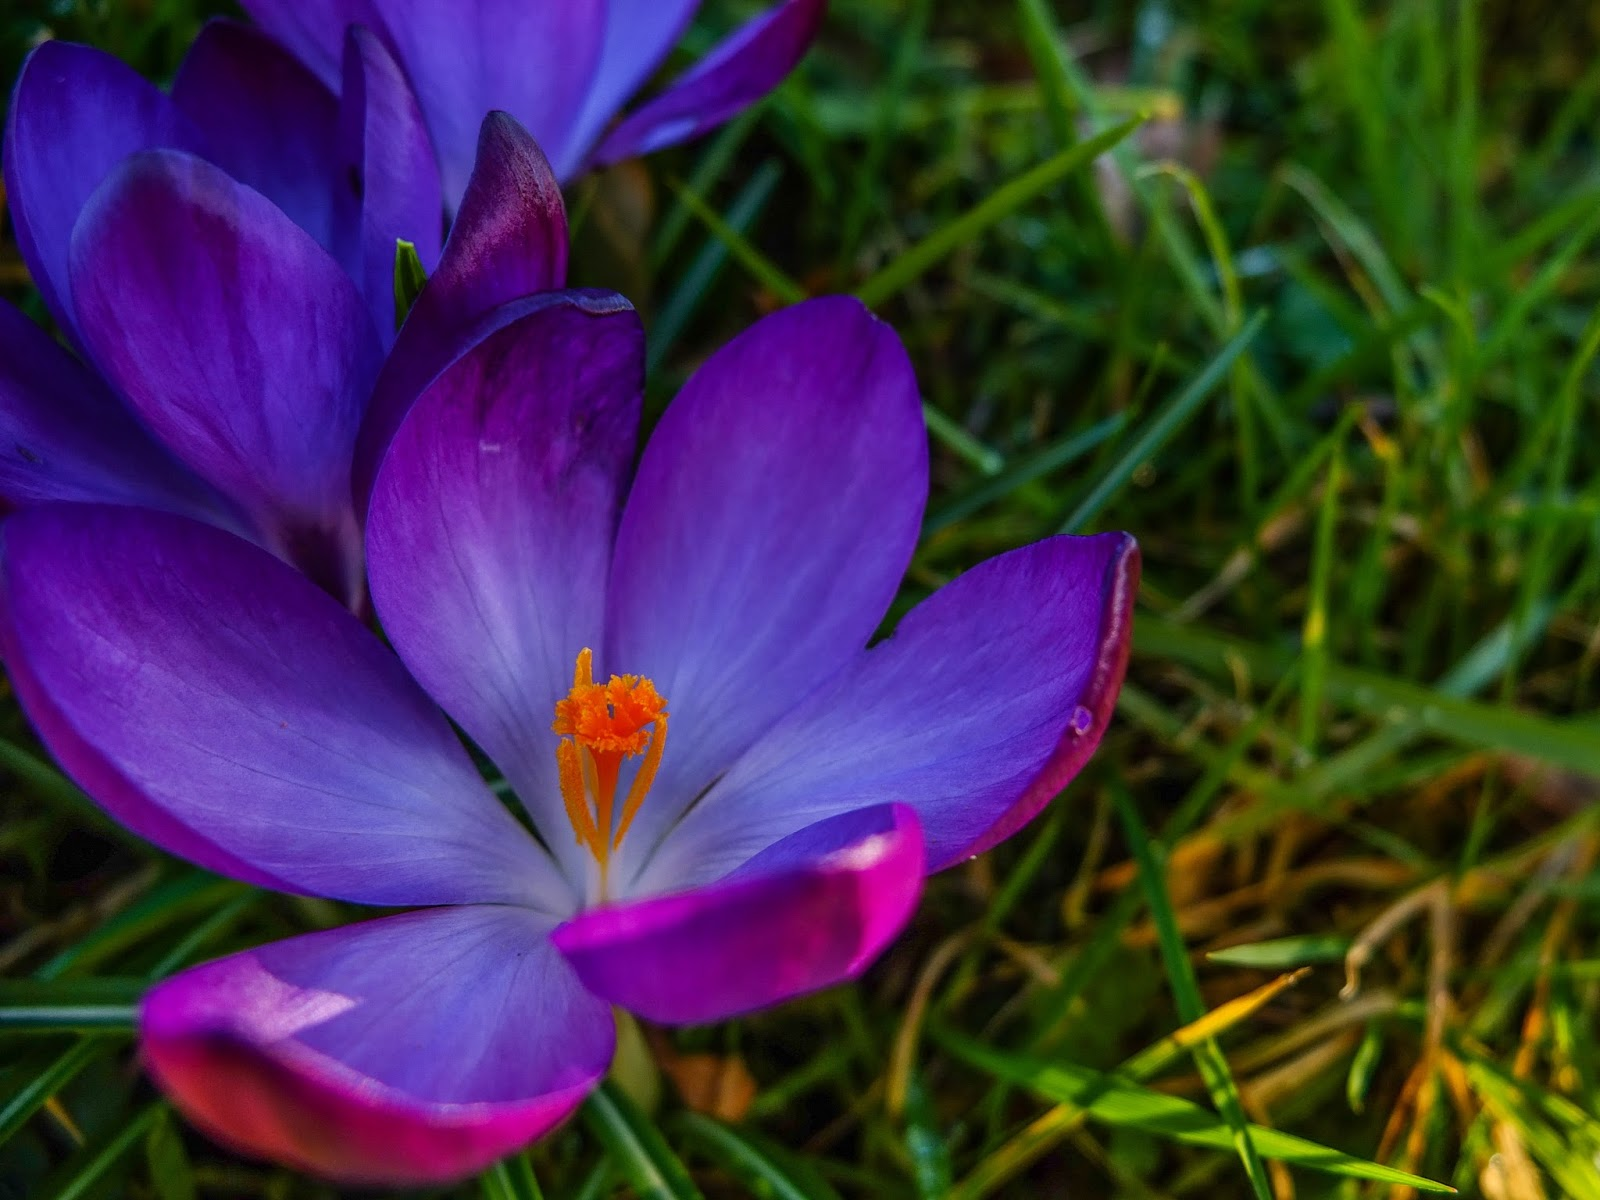 An opened crocus flower with a close up of the filaments.